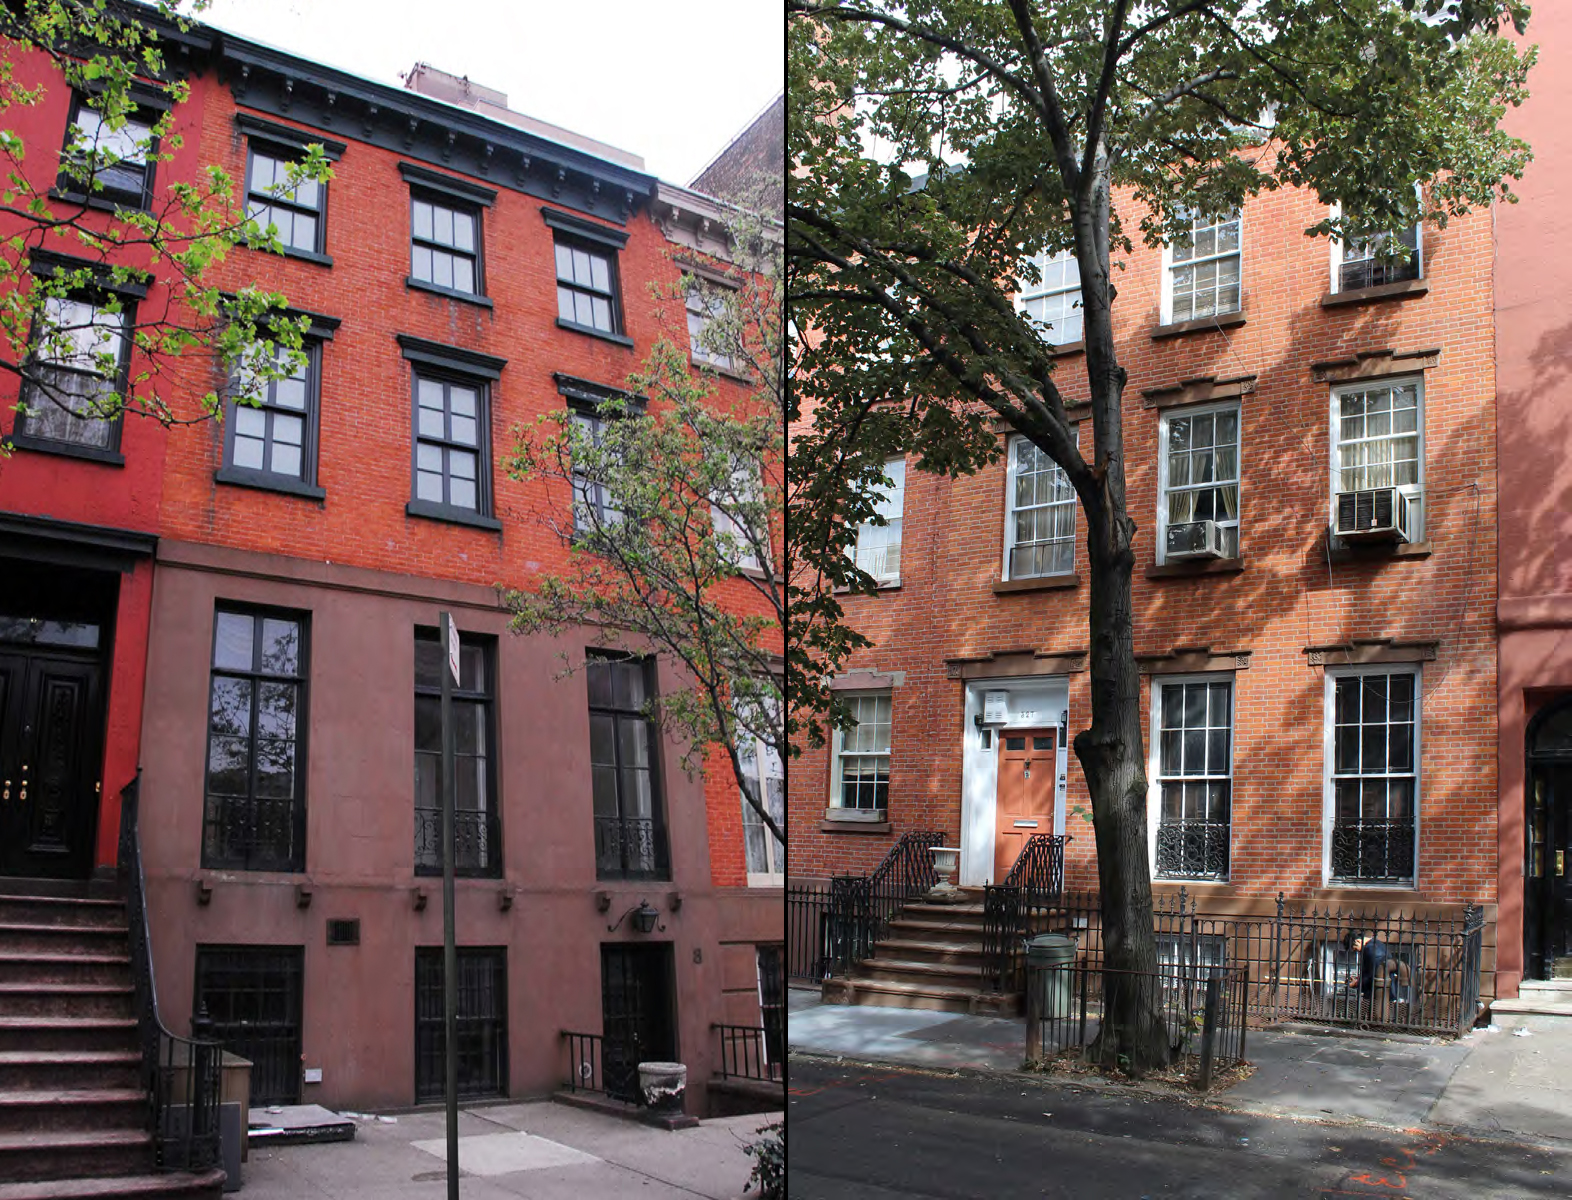 Existing conditions at 8 Perry Street and 327 West 4th Street